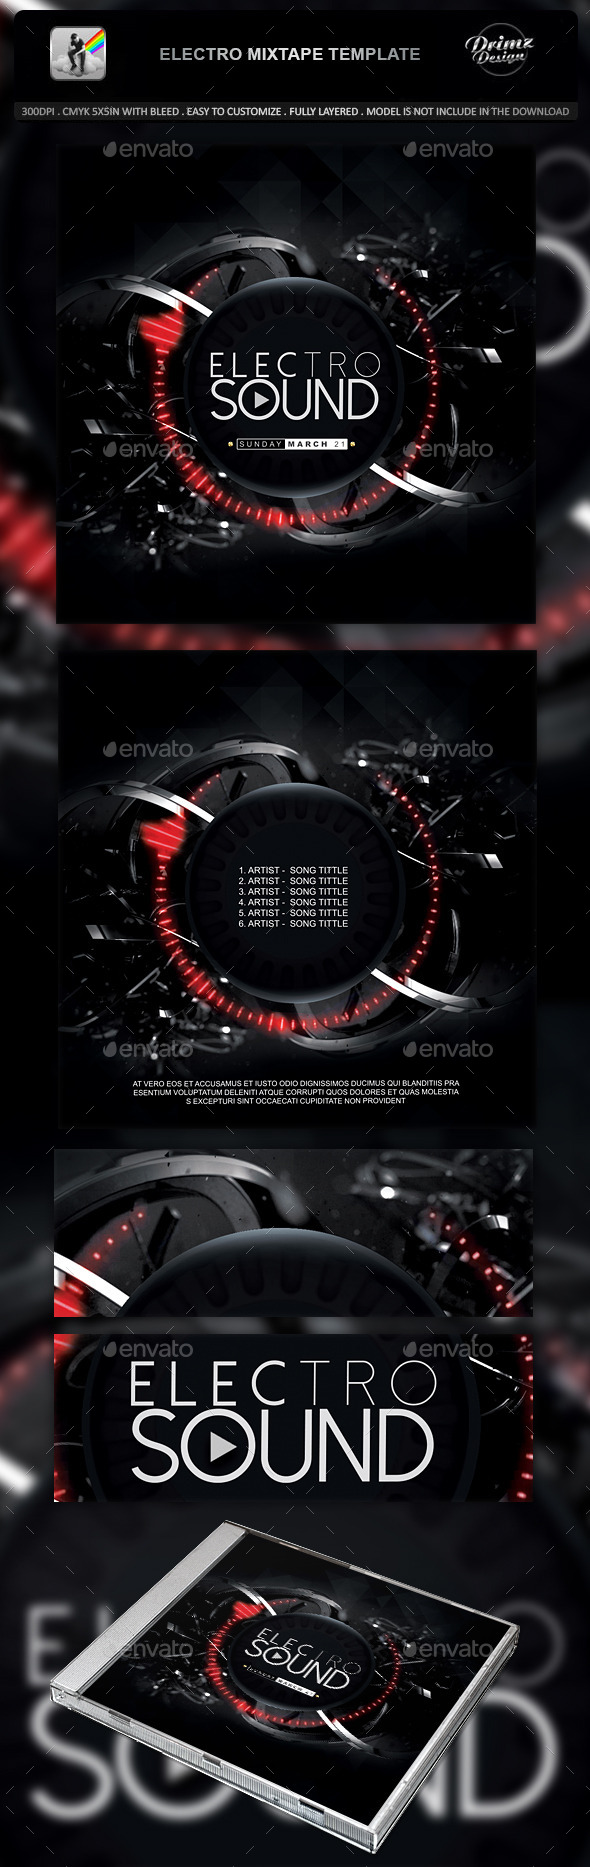 GraphicRiver Electro Mixtape Template 11035795